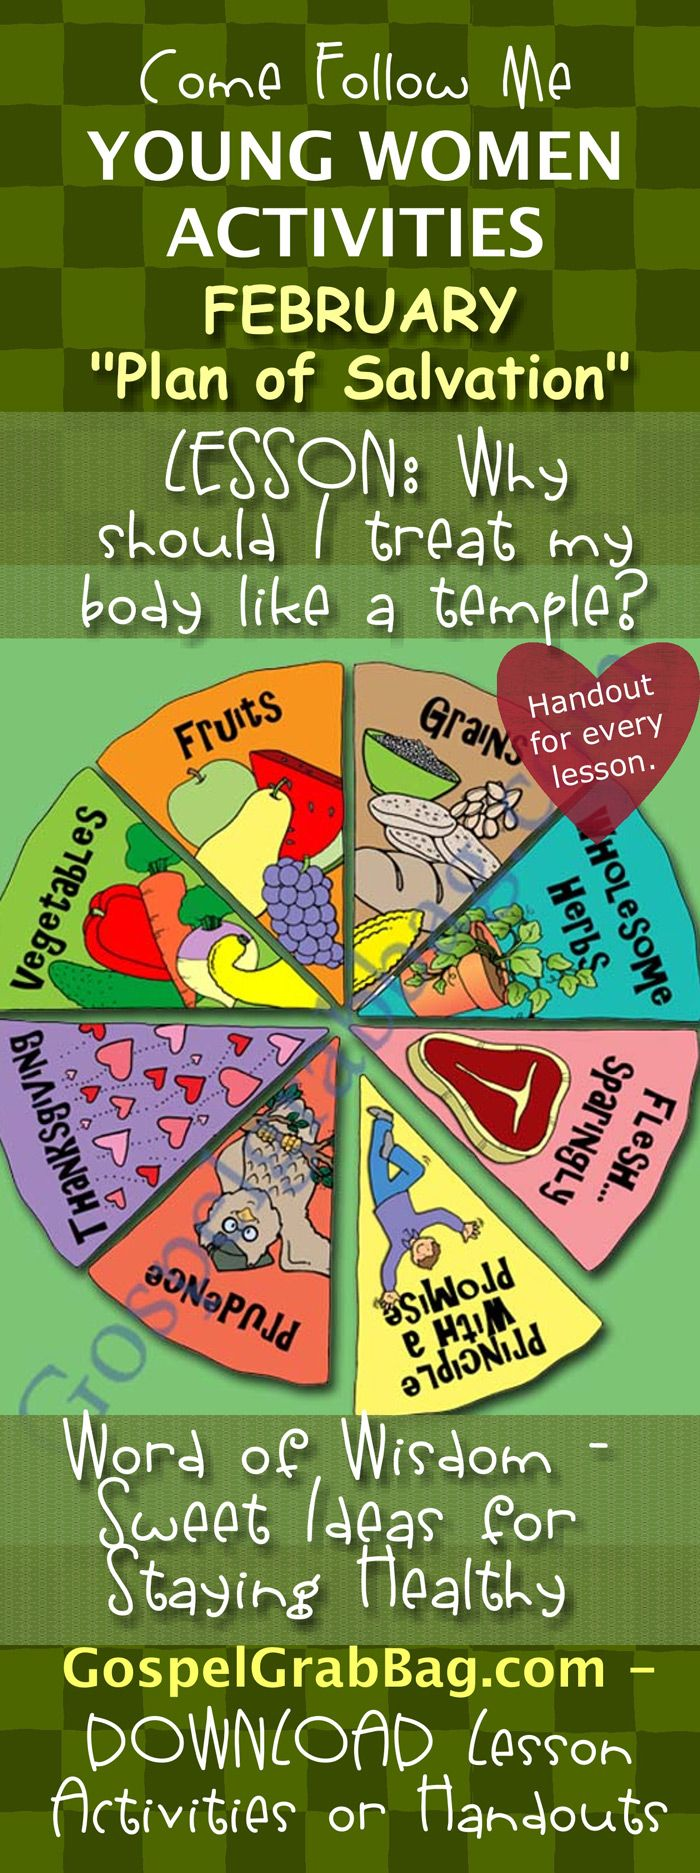 BODY IS A TEMPLE – HEALTH - WORD OF WISDOM: Come Follow Me – LDS Young Women Activities, February Theme: The Plan of Salvation, Lesson Topic #7: Why should I treat my body like a temple? handout for every lesson, ACTIVITY: Word of Wisdom Pie – Sweet Ideas for Staying Healthy, Gospel grab bag – handouts to download from gospelgrabbag.com